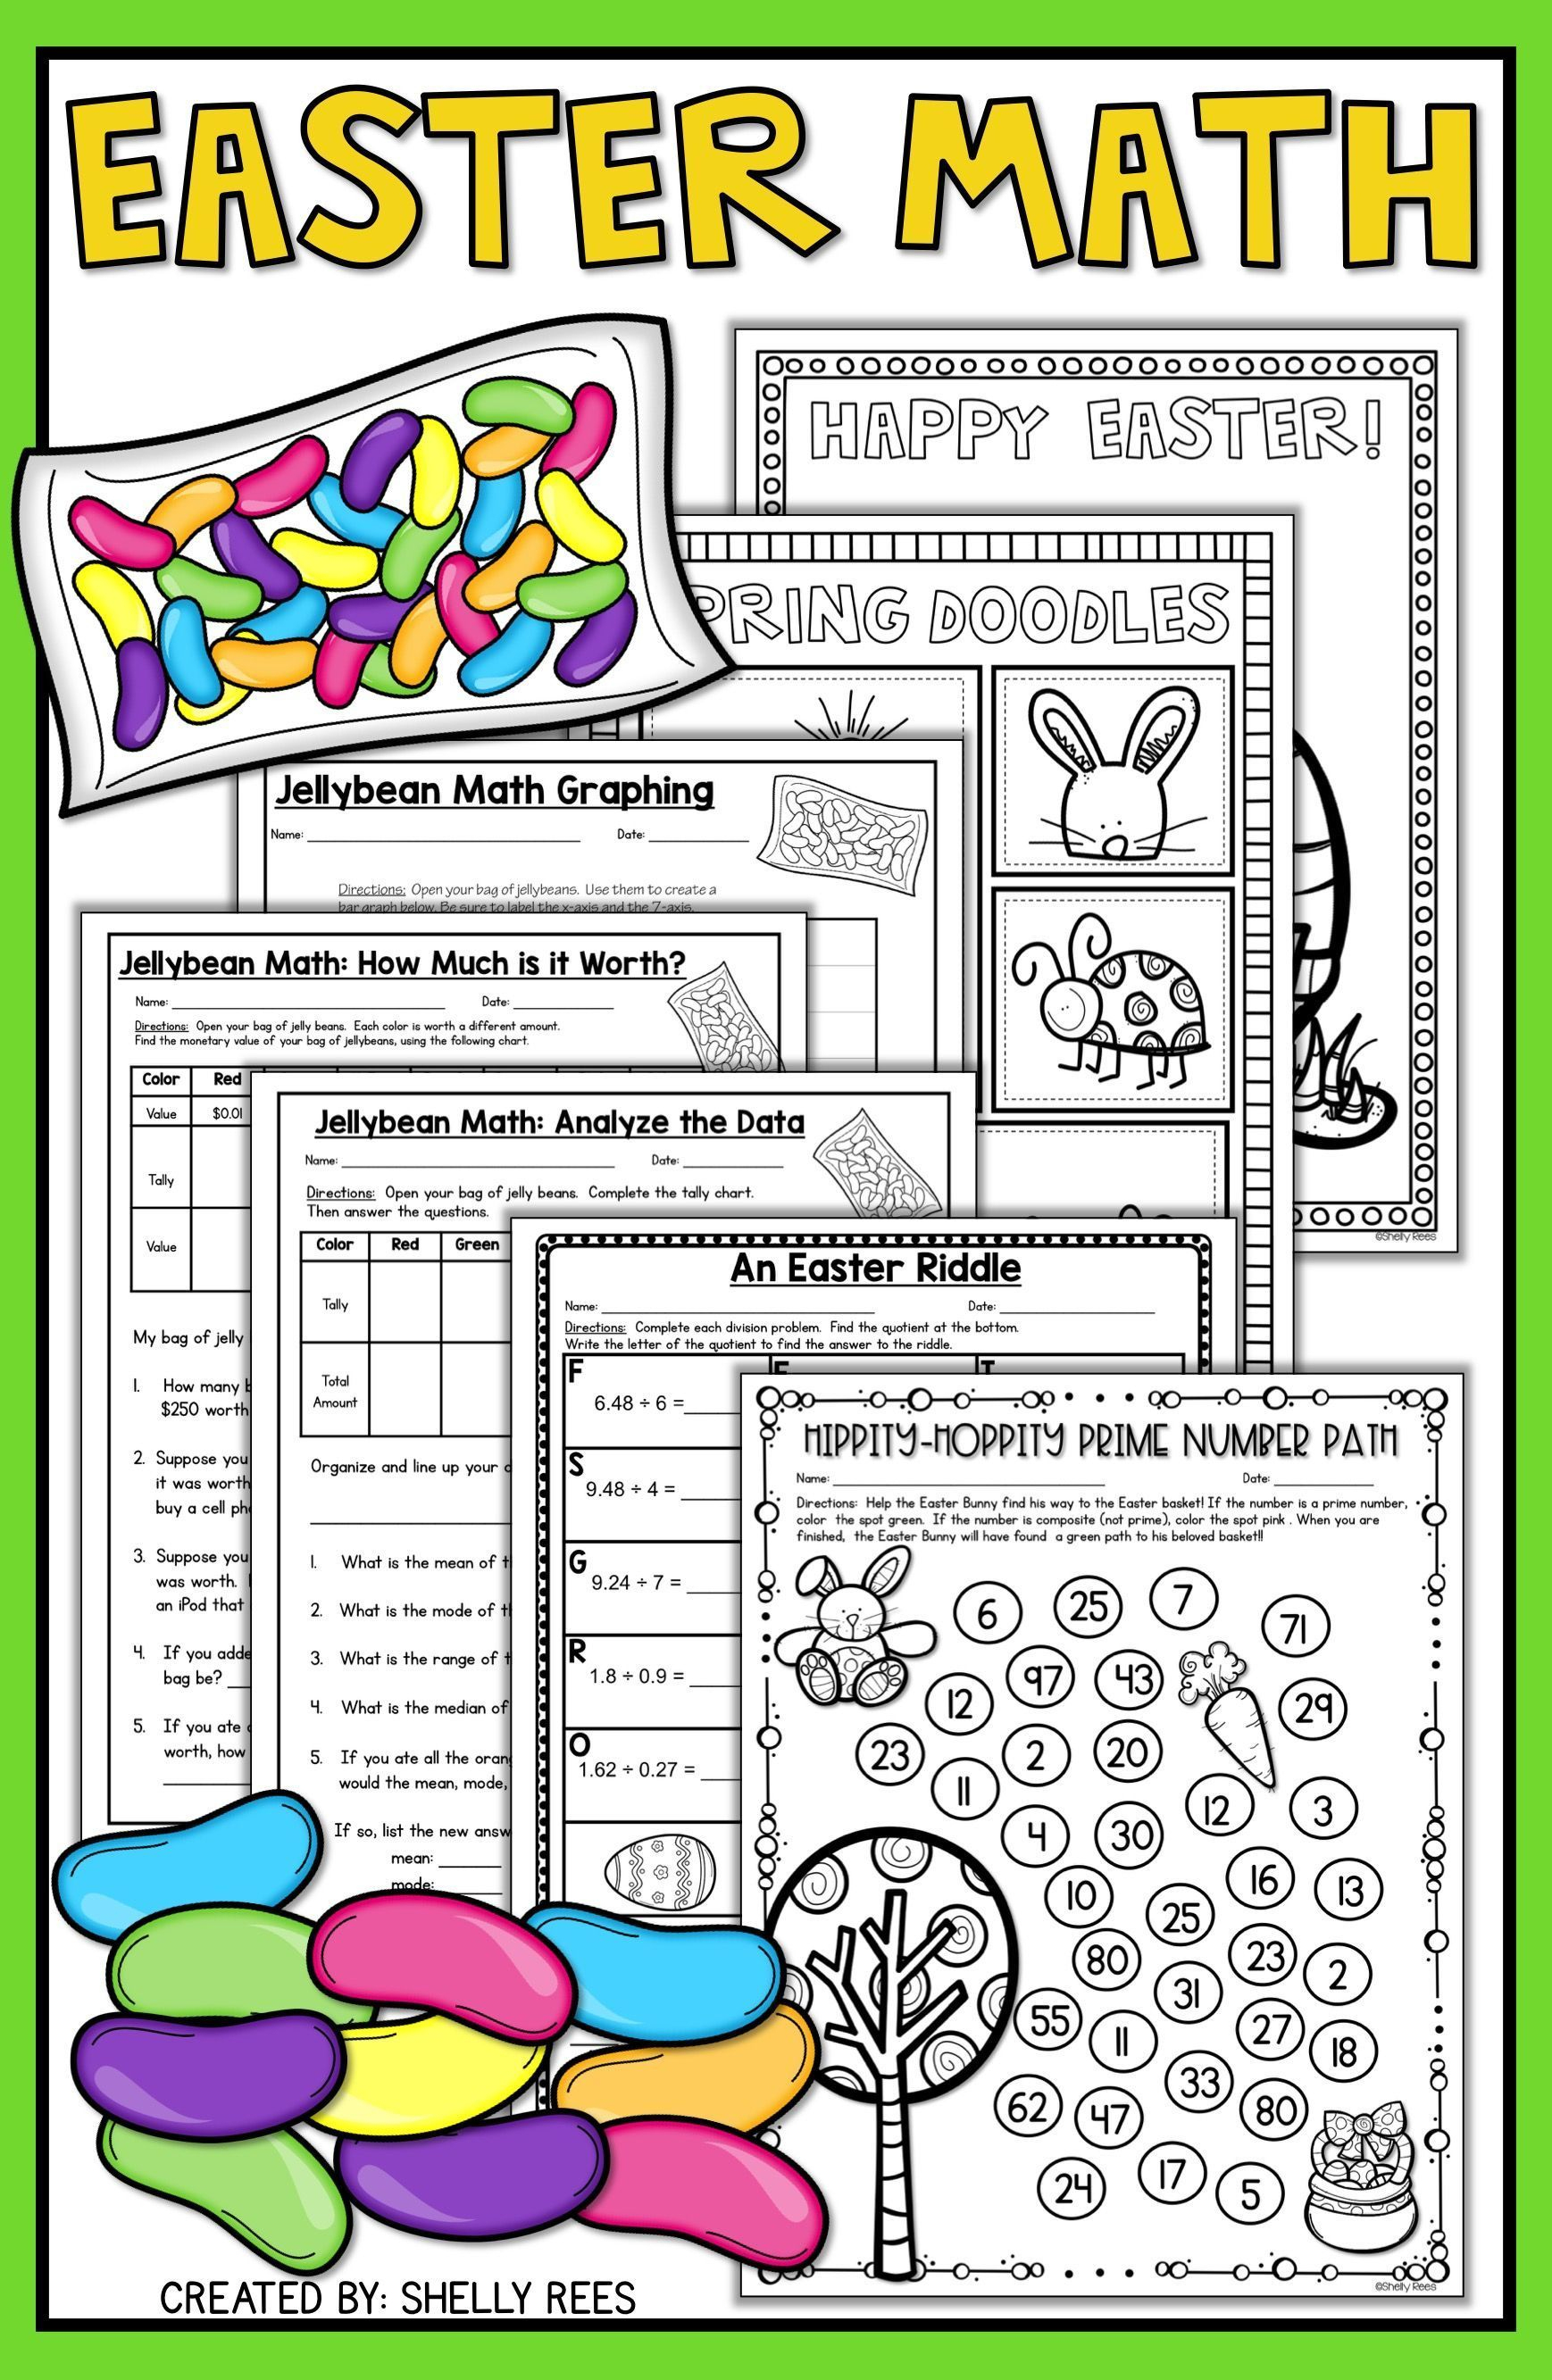 Easter Math Worksheets - Jellybean Math - Easter Activities | Big | Free Printable Easter Worksheets For 3Rd Grade